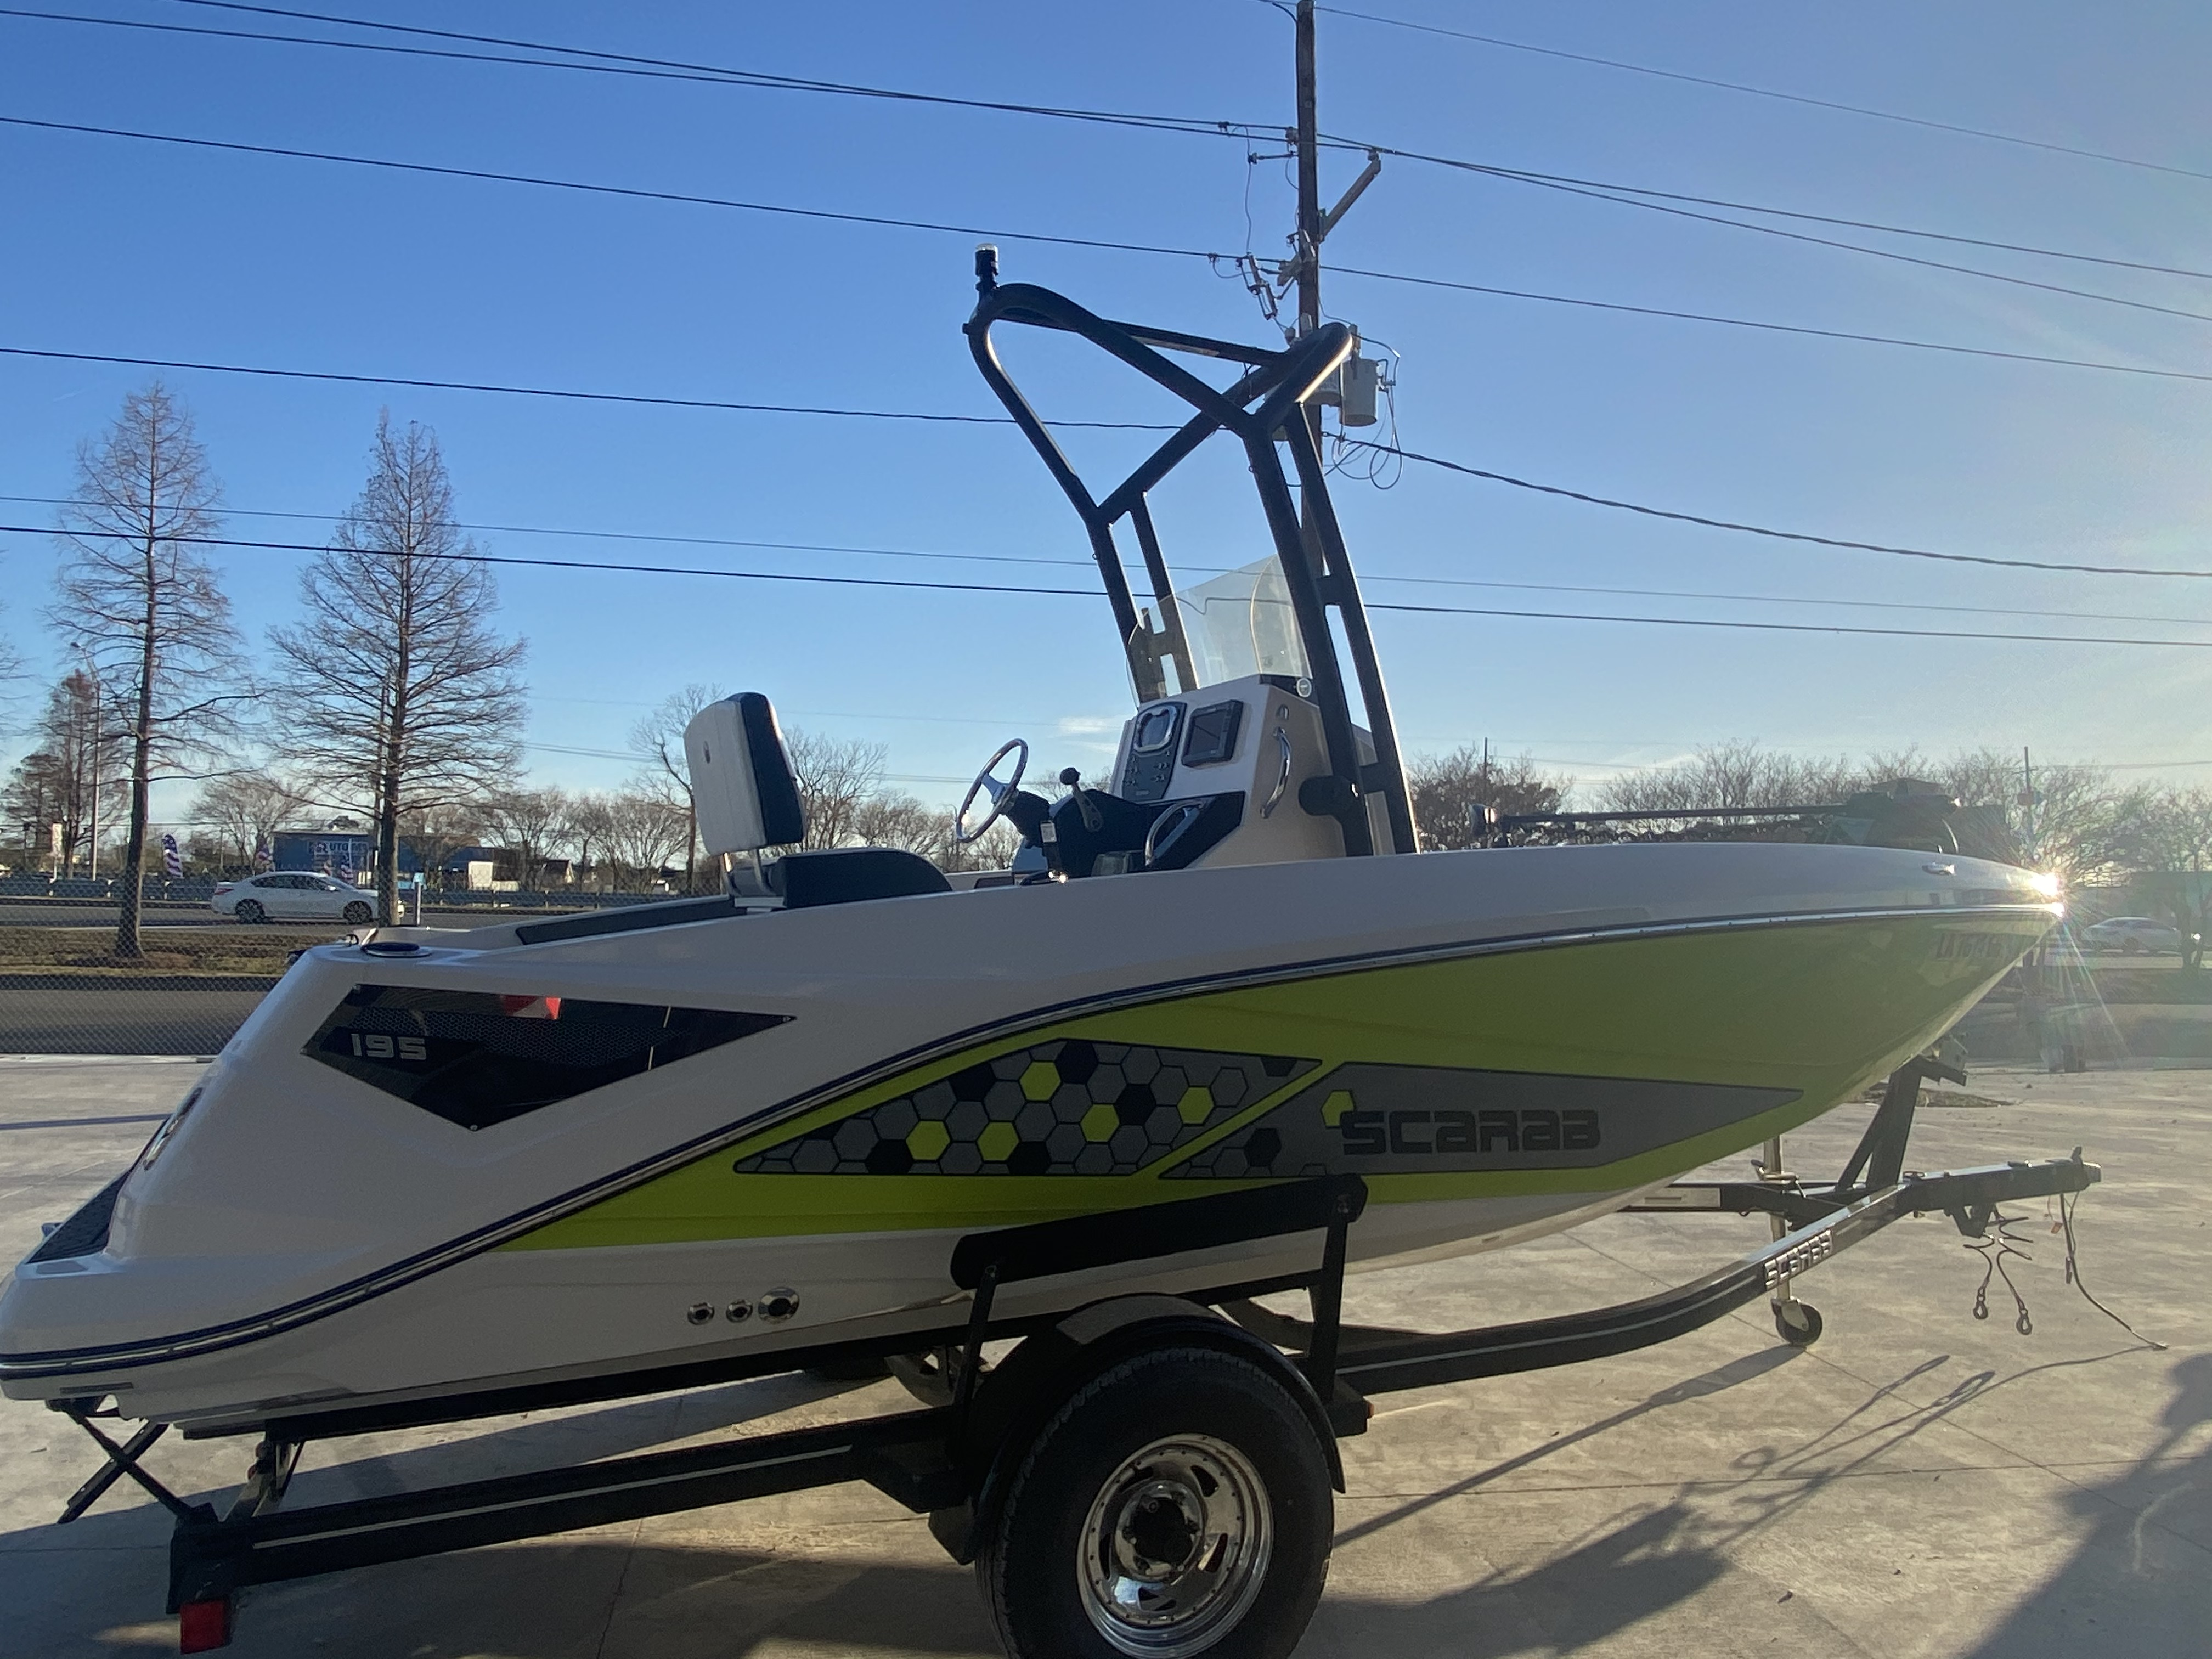 2017 Scarab boat for sale, model of the boat is 195 & Image # 6 of 14